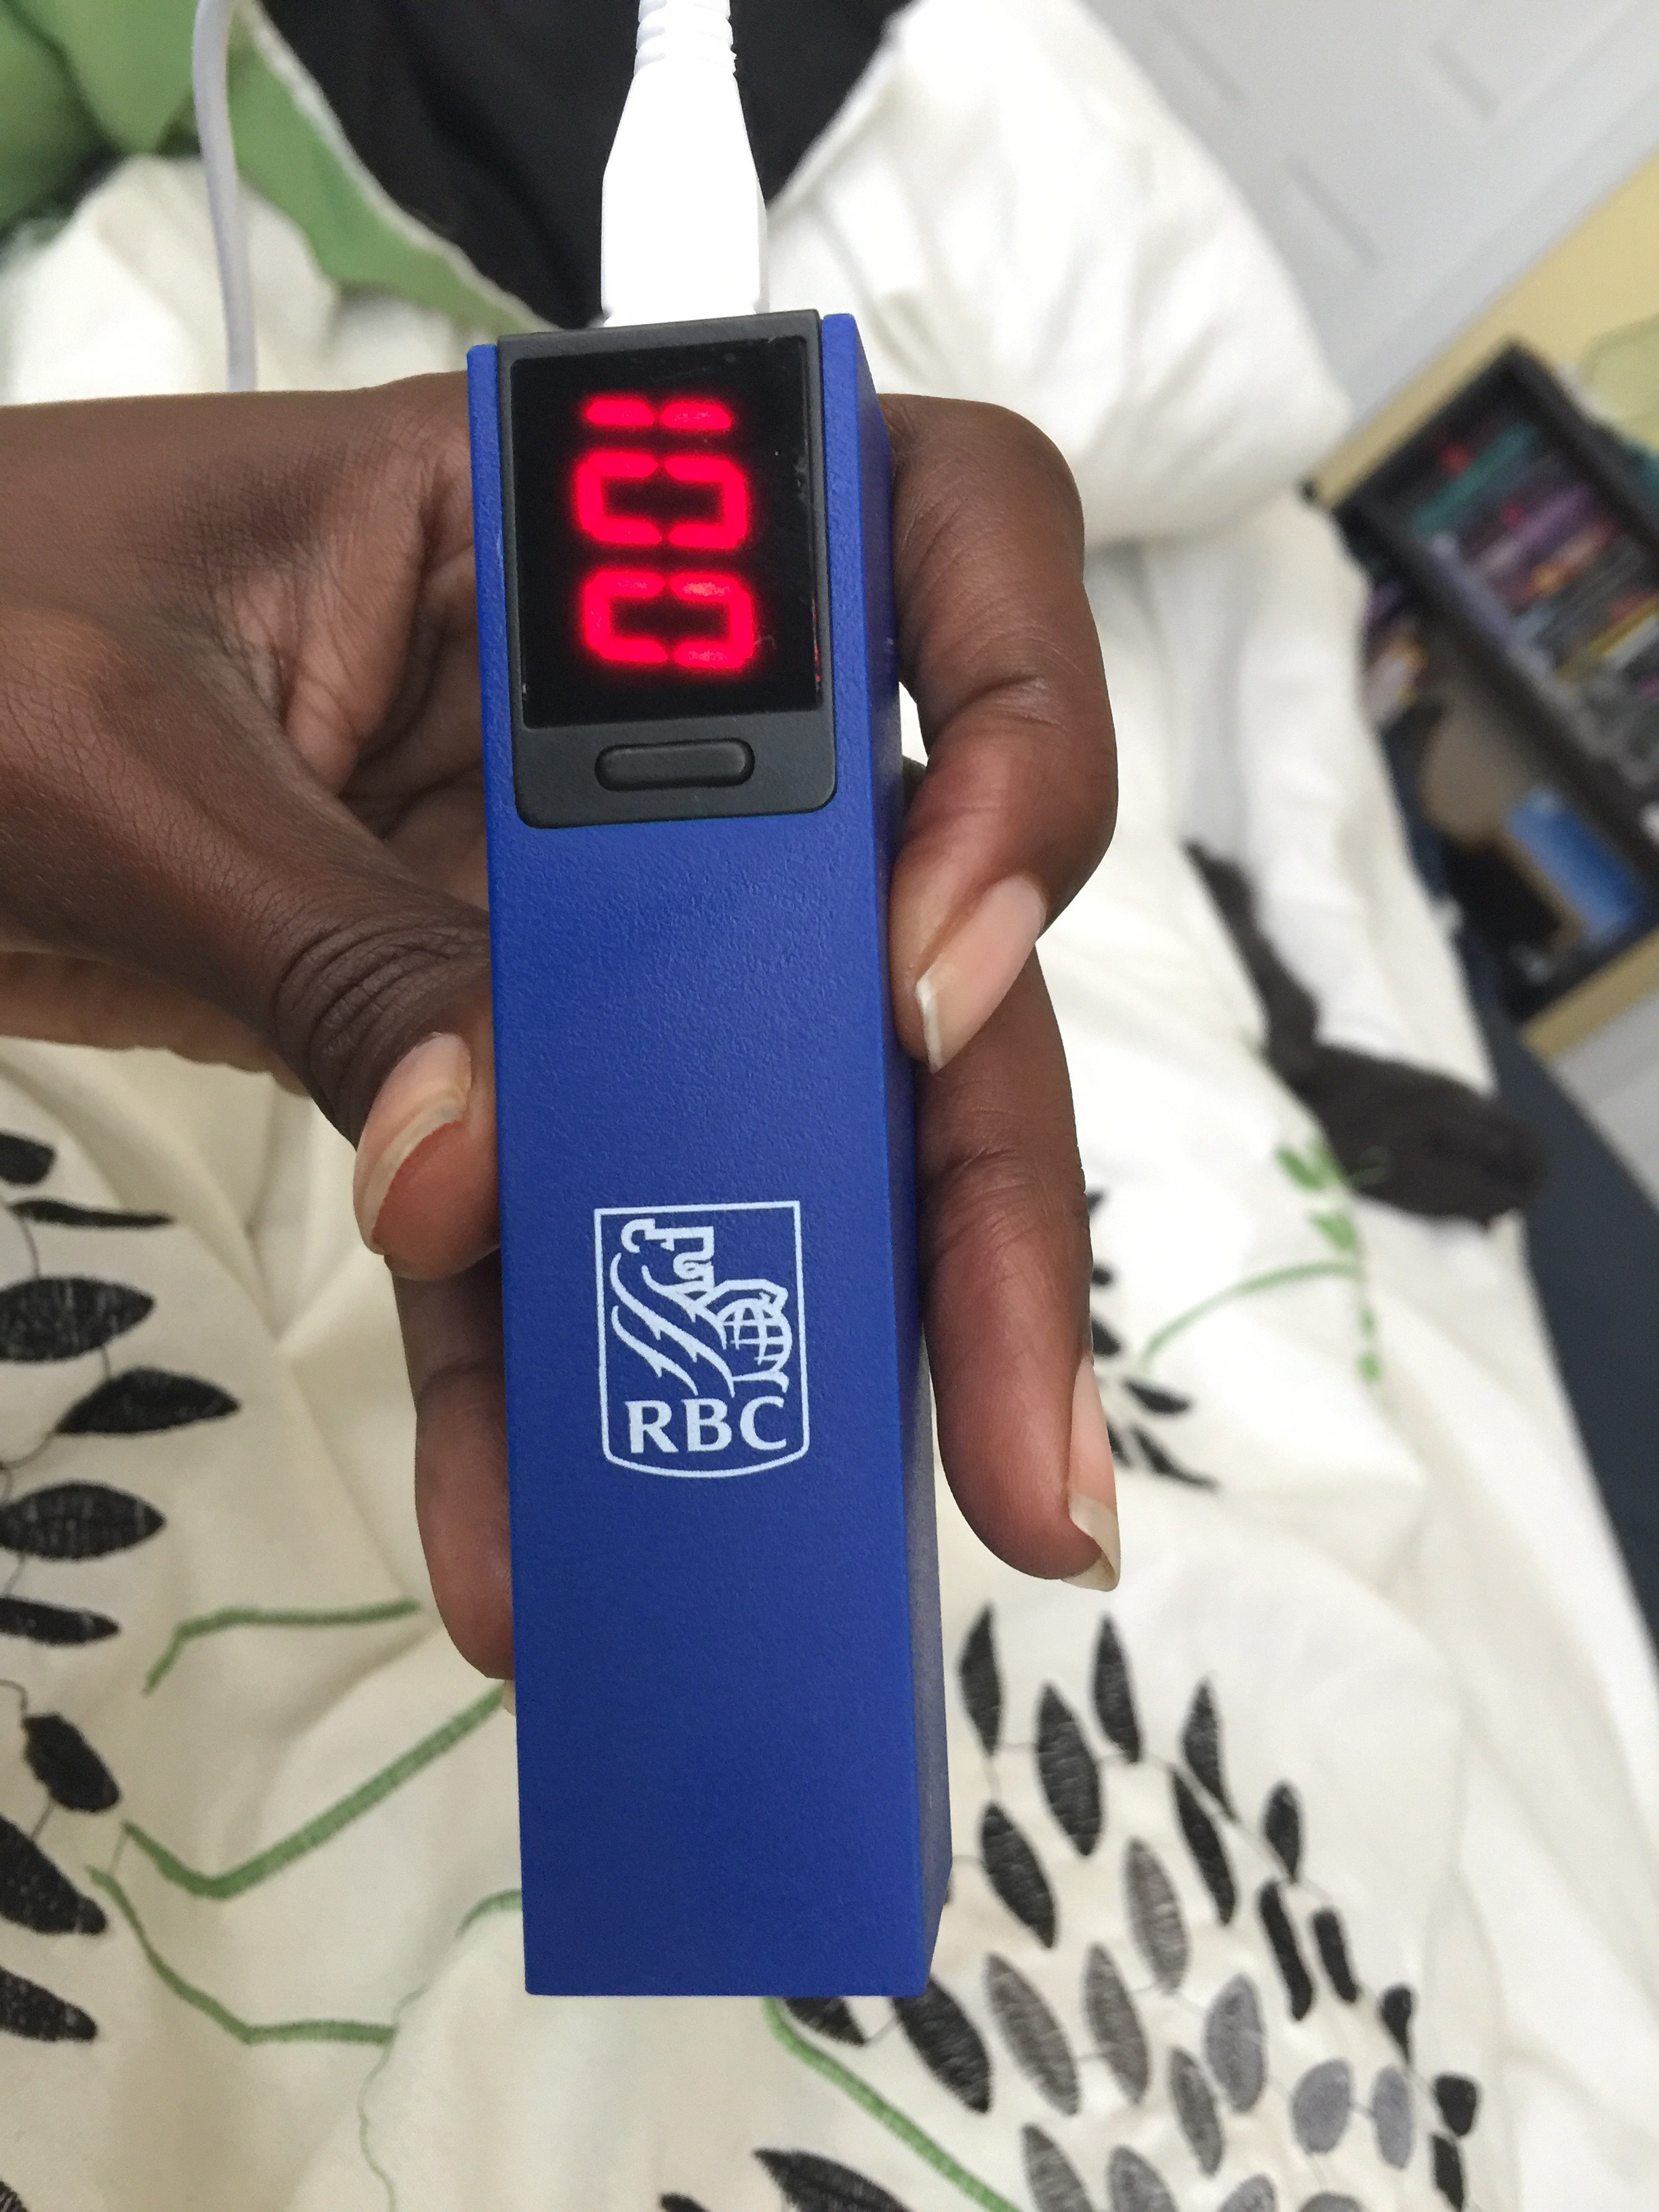 RBC battery charger